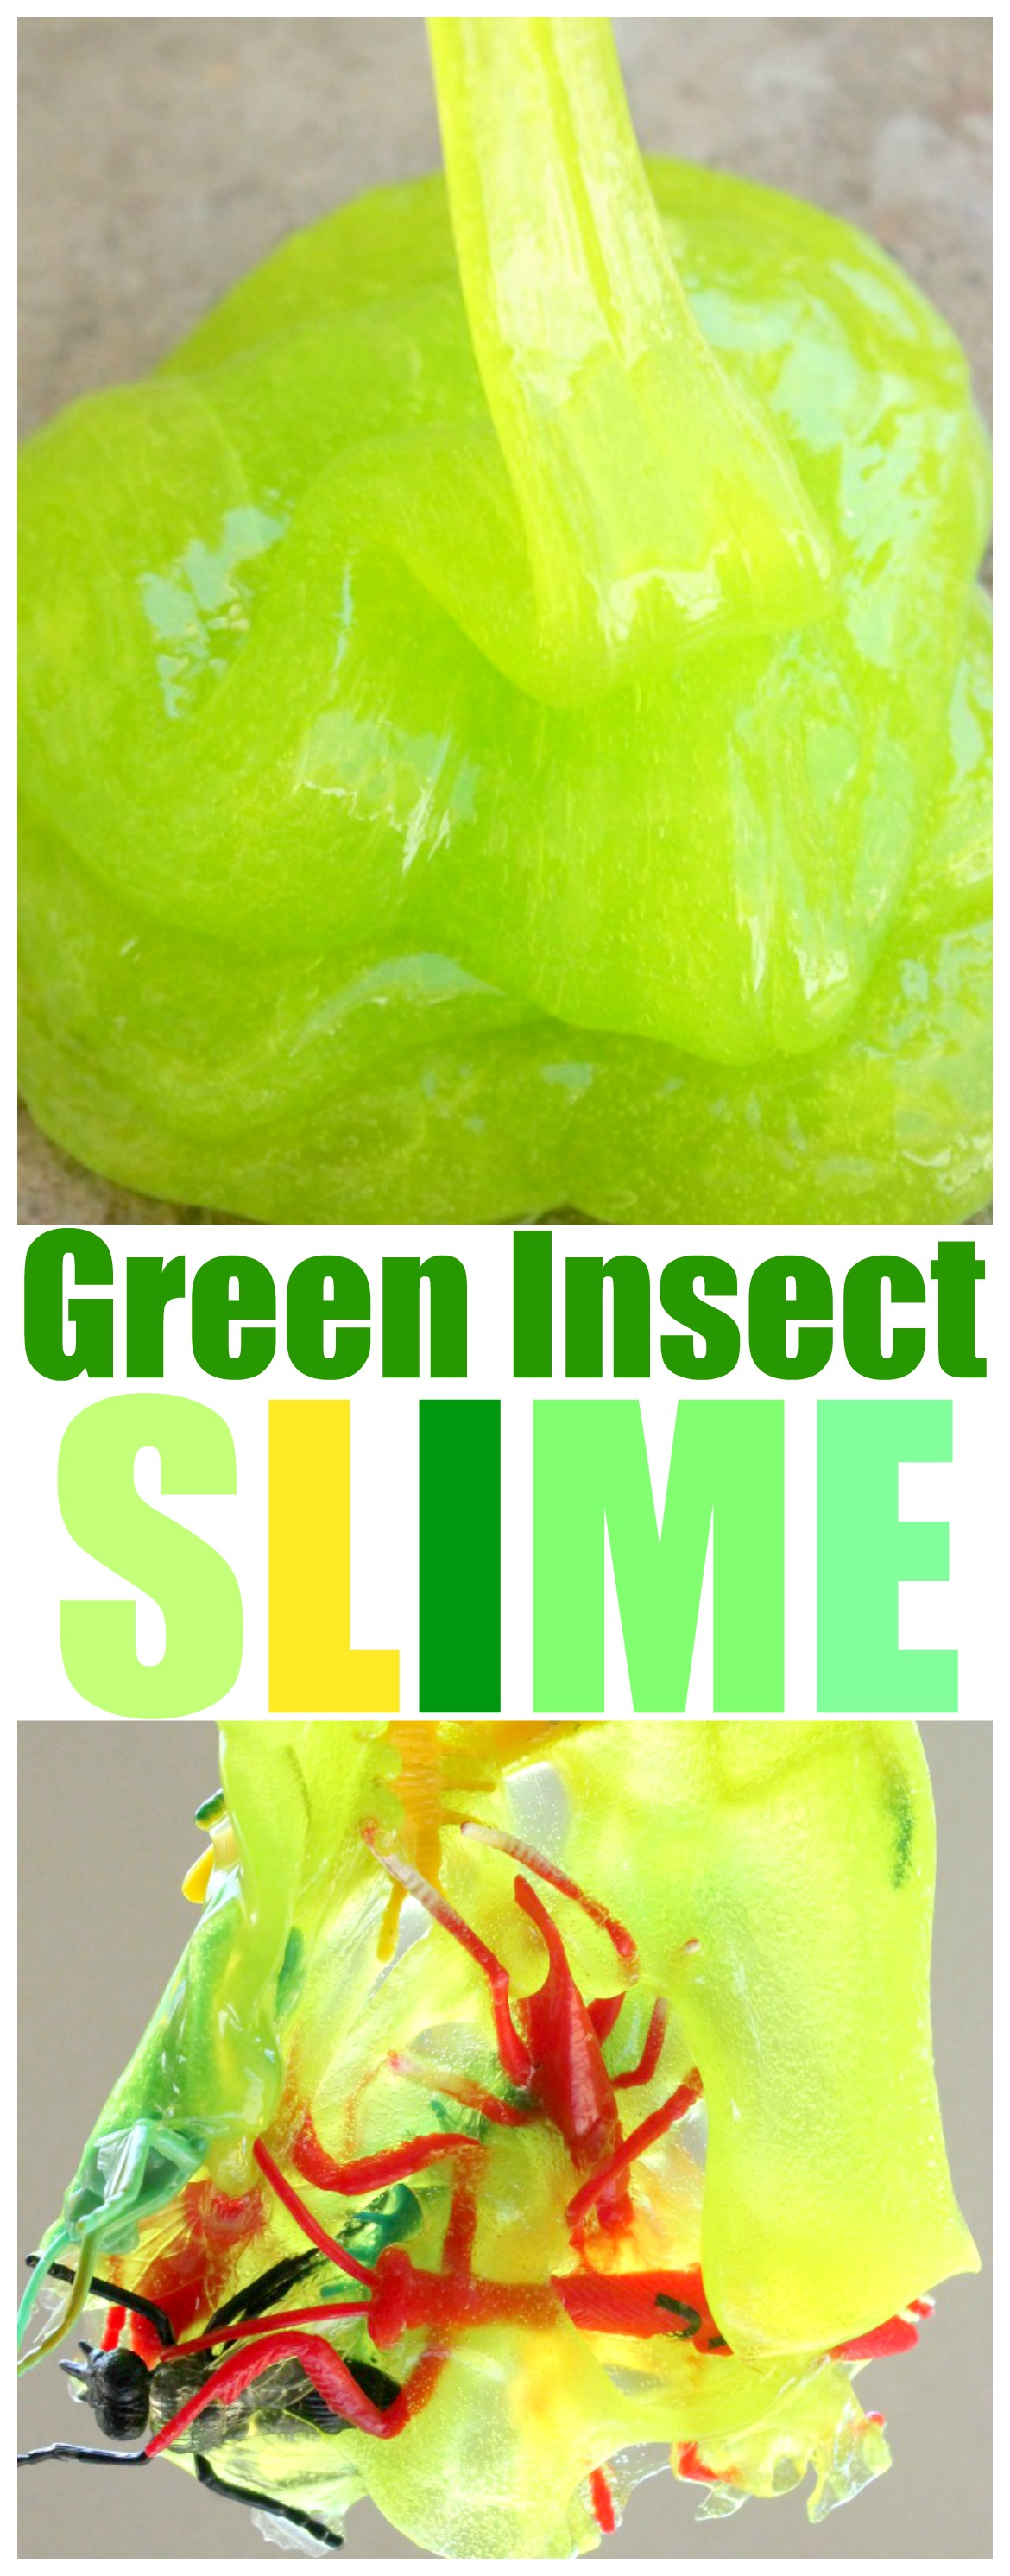 Bug Slime Easy DIY Slime Recipe For Kids. Green Ooze Slime made with Borax or Without Borax. Best Slime Recipe. Great Sensory Play Activity